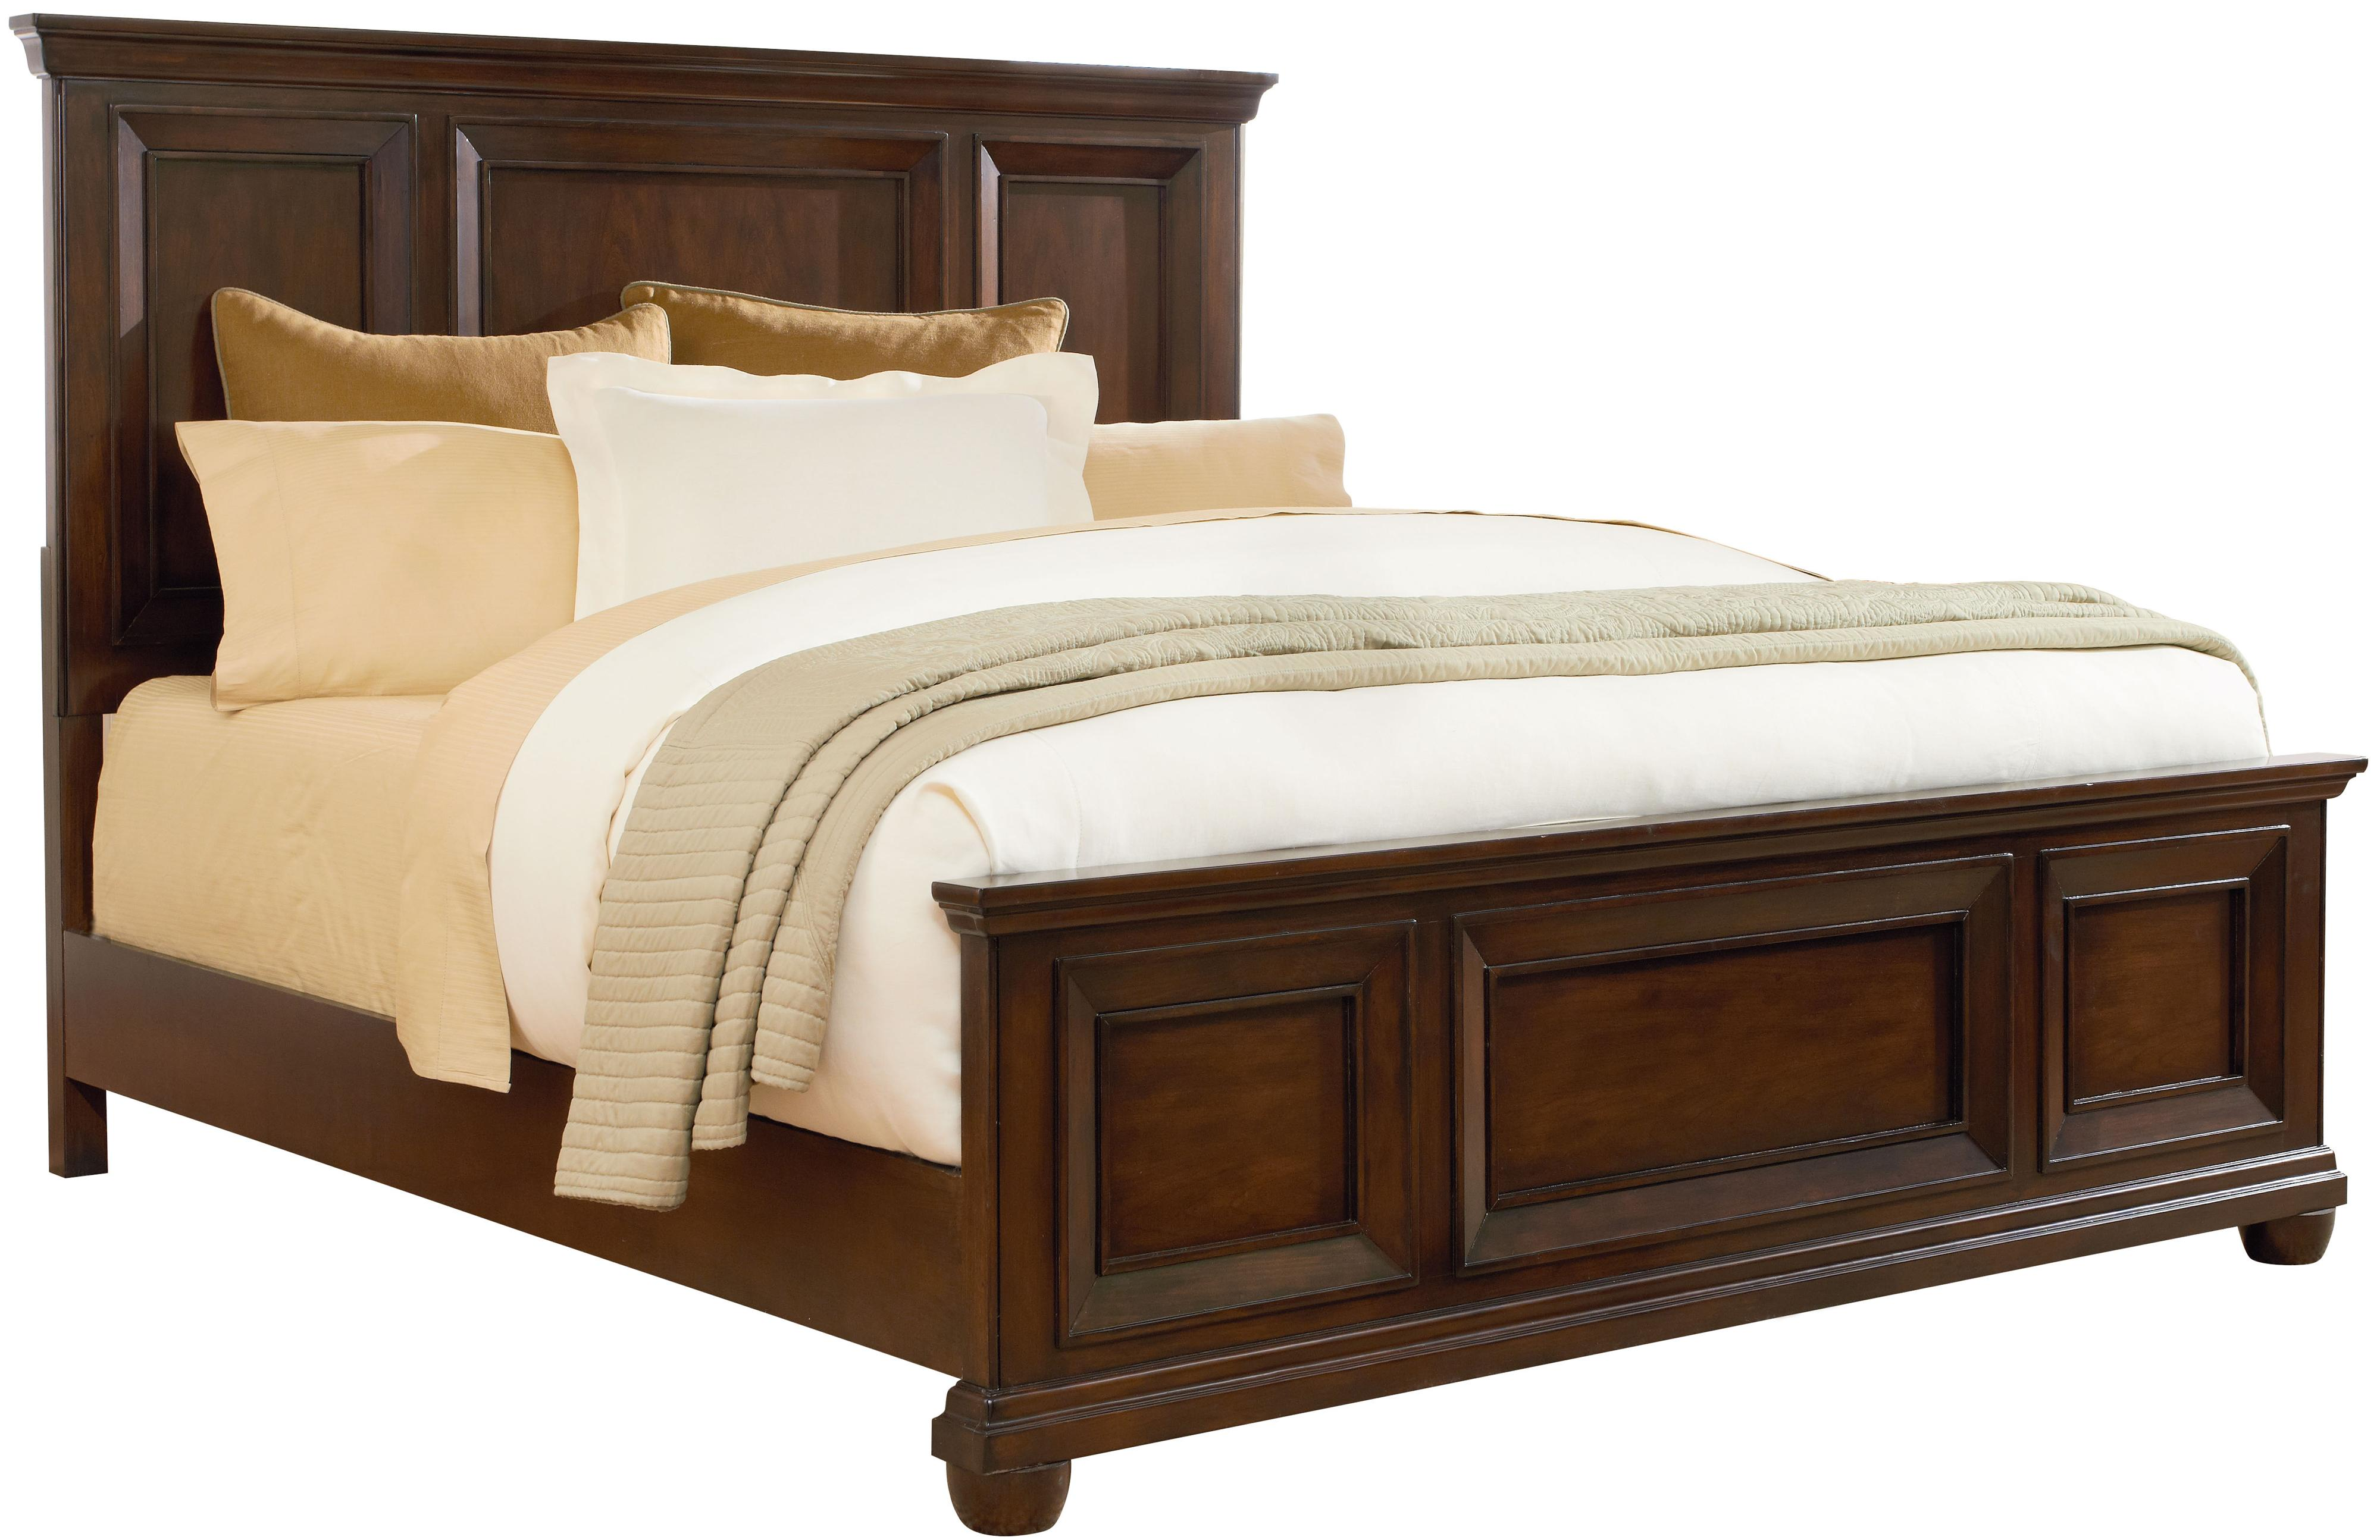 Standard Furniture Vineyard Queen Panel Bed - Item Number: 87721+87723+87722